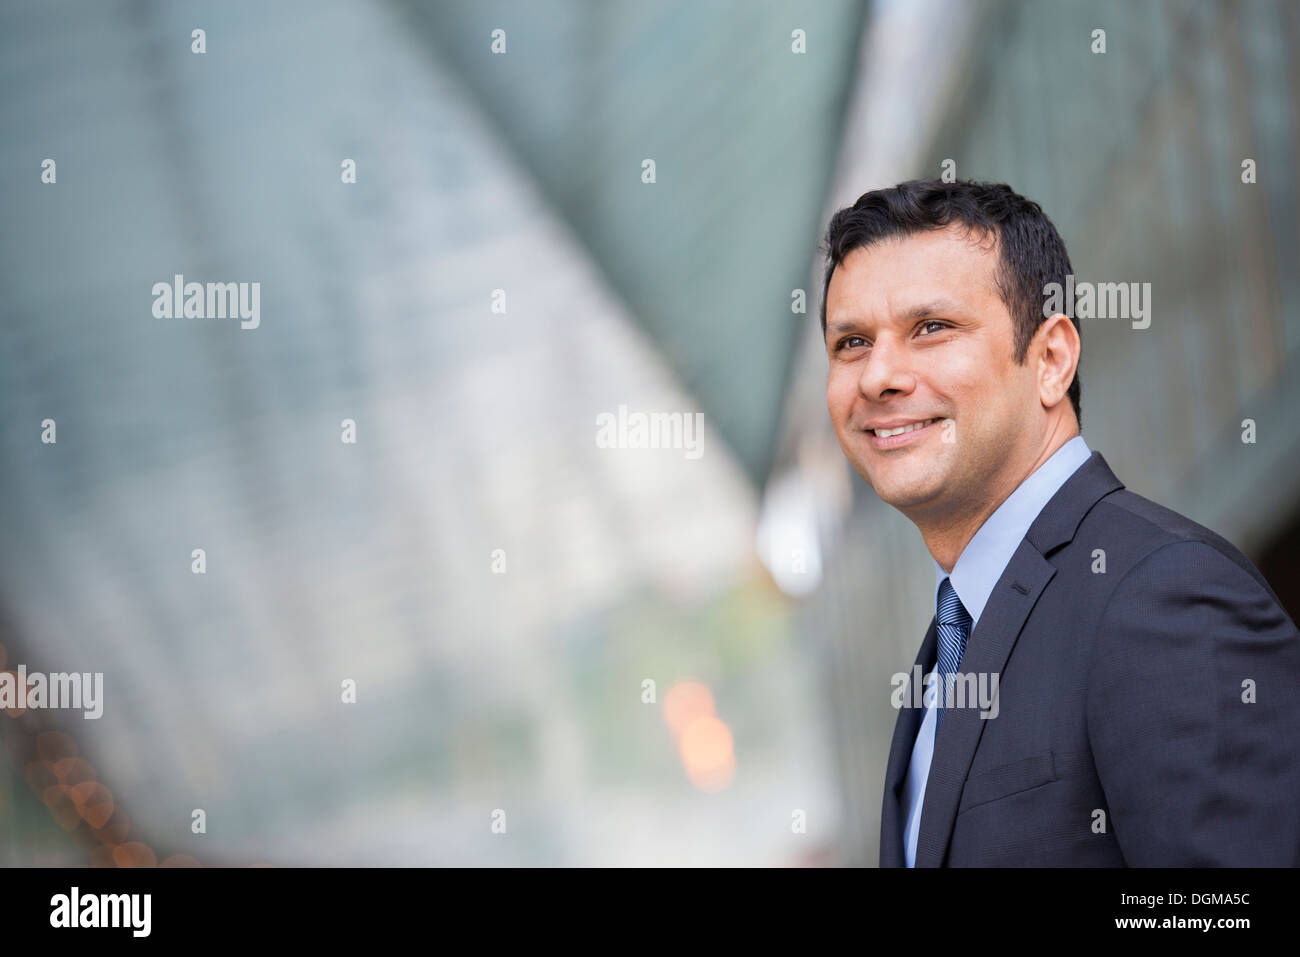 Business people. A latino businessman in business clothes. - Stock Image